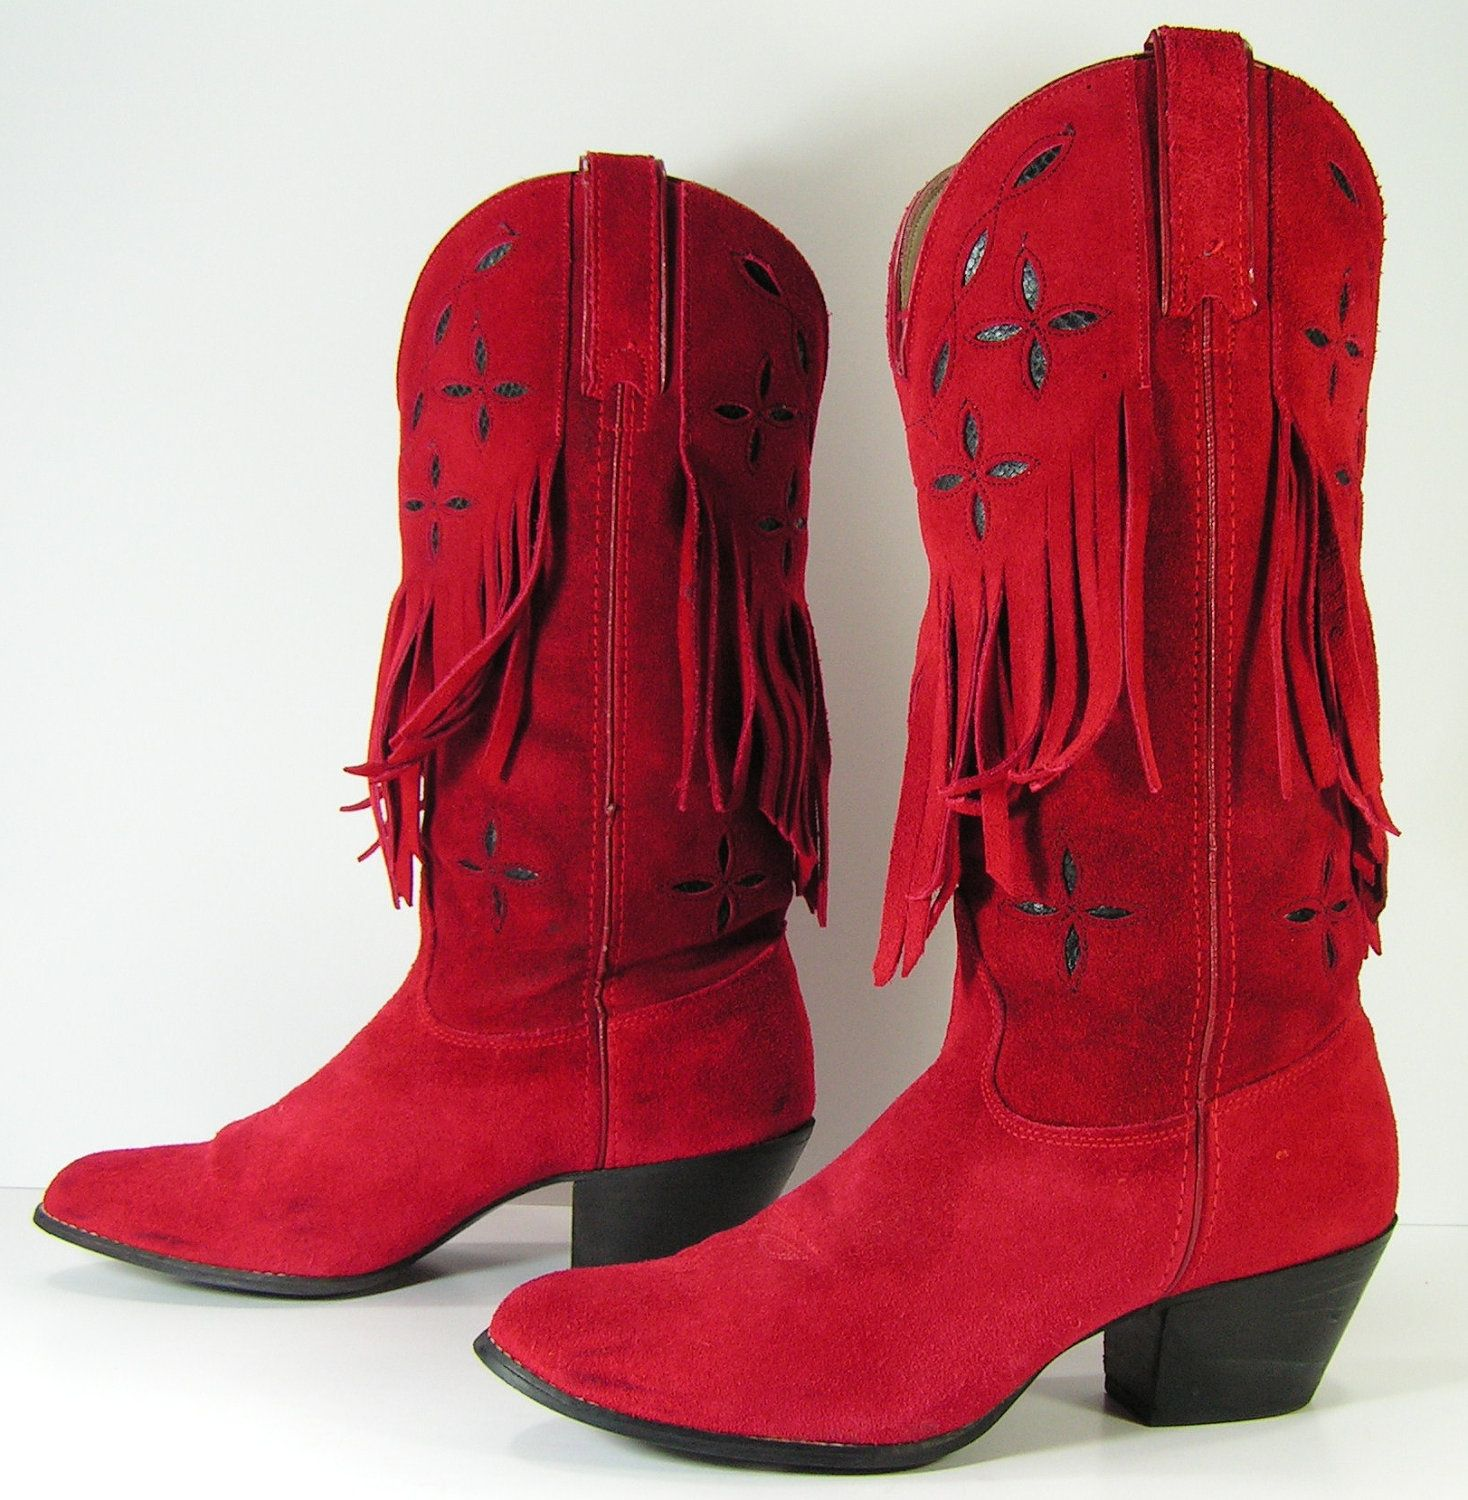 red cowboy boots womens 8 B tassels suede leather fringe western ...